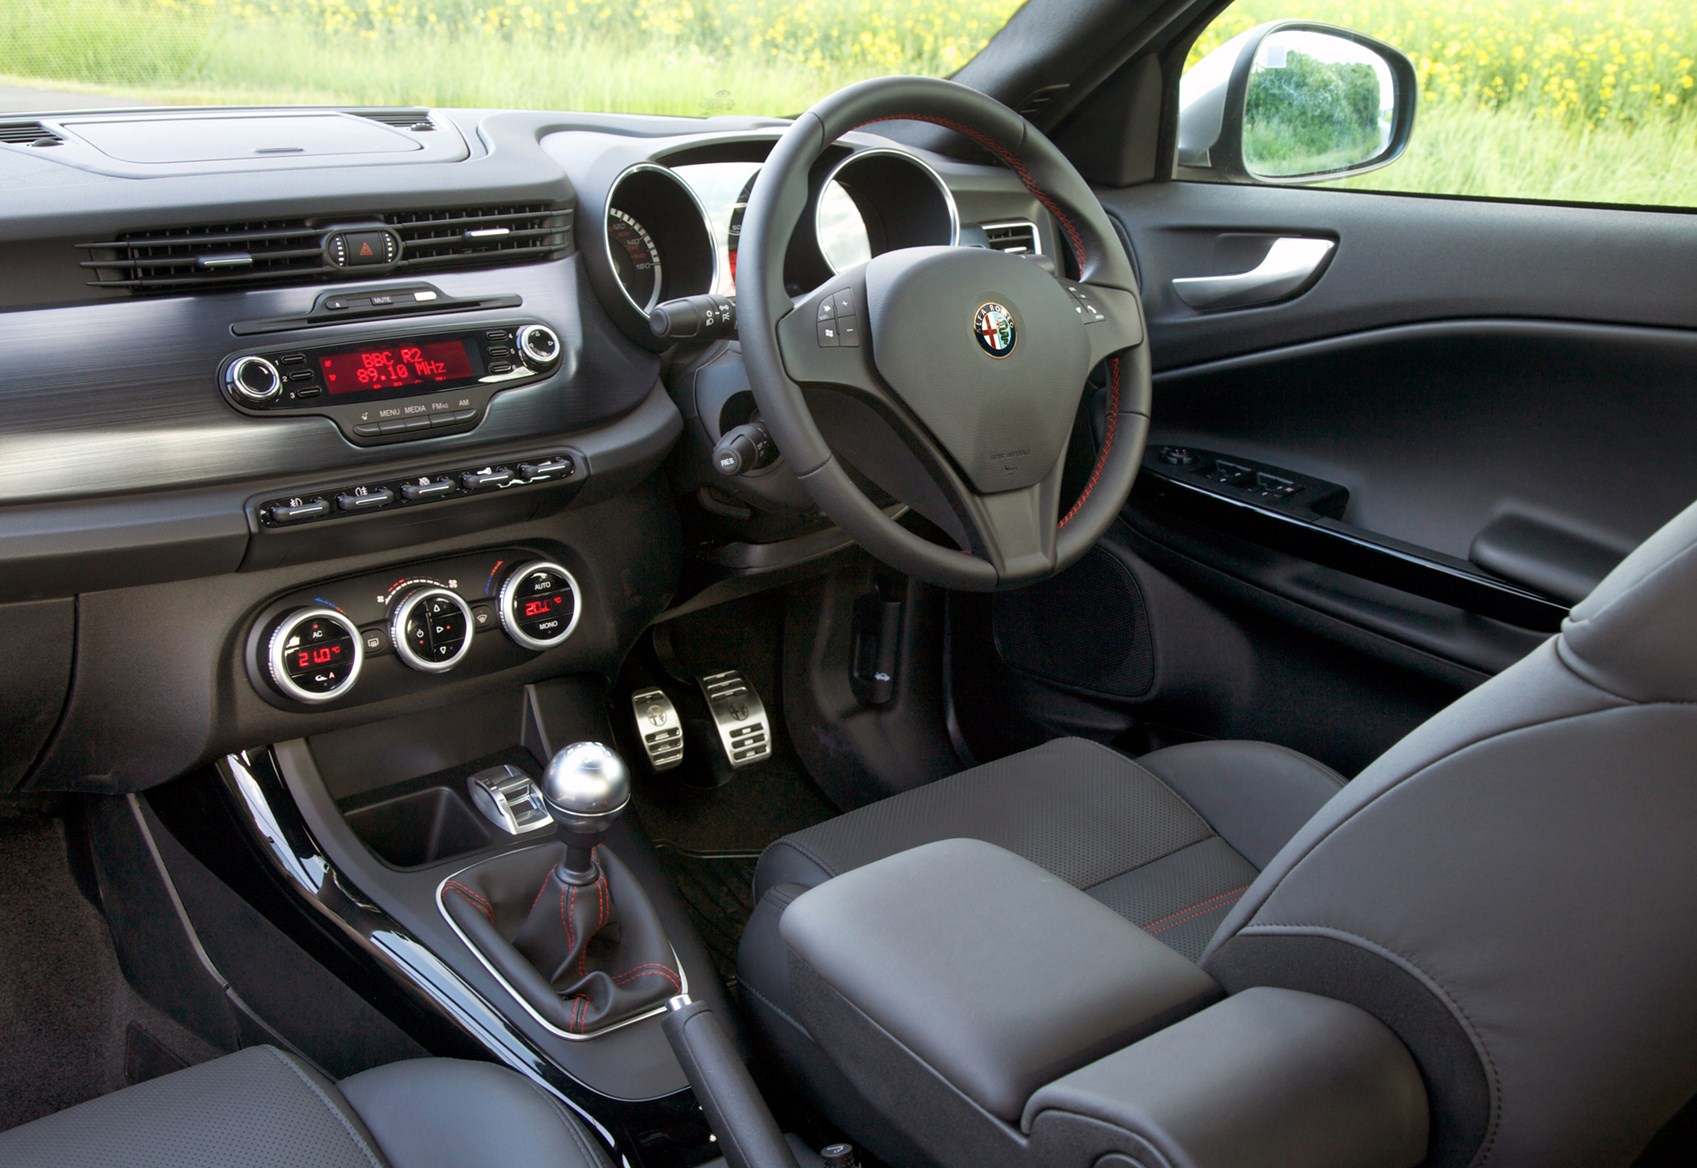 Alfa Romeo Giulietta Hatchback Review 2010 Parkers